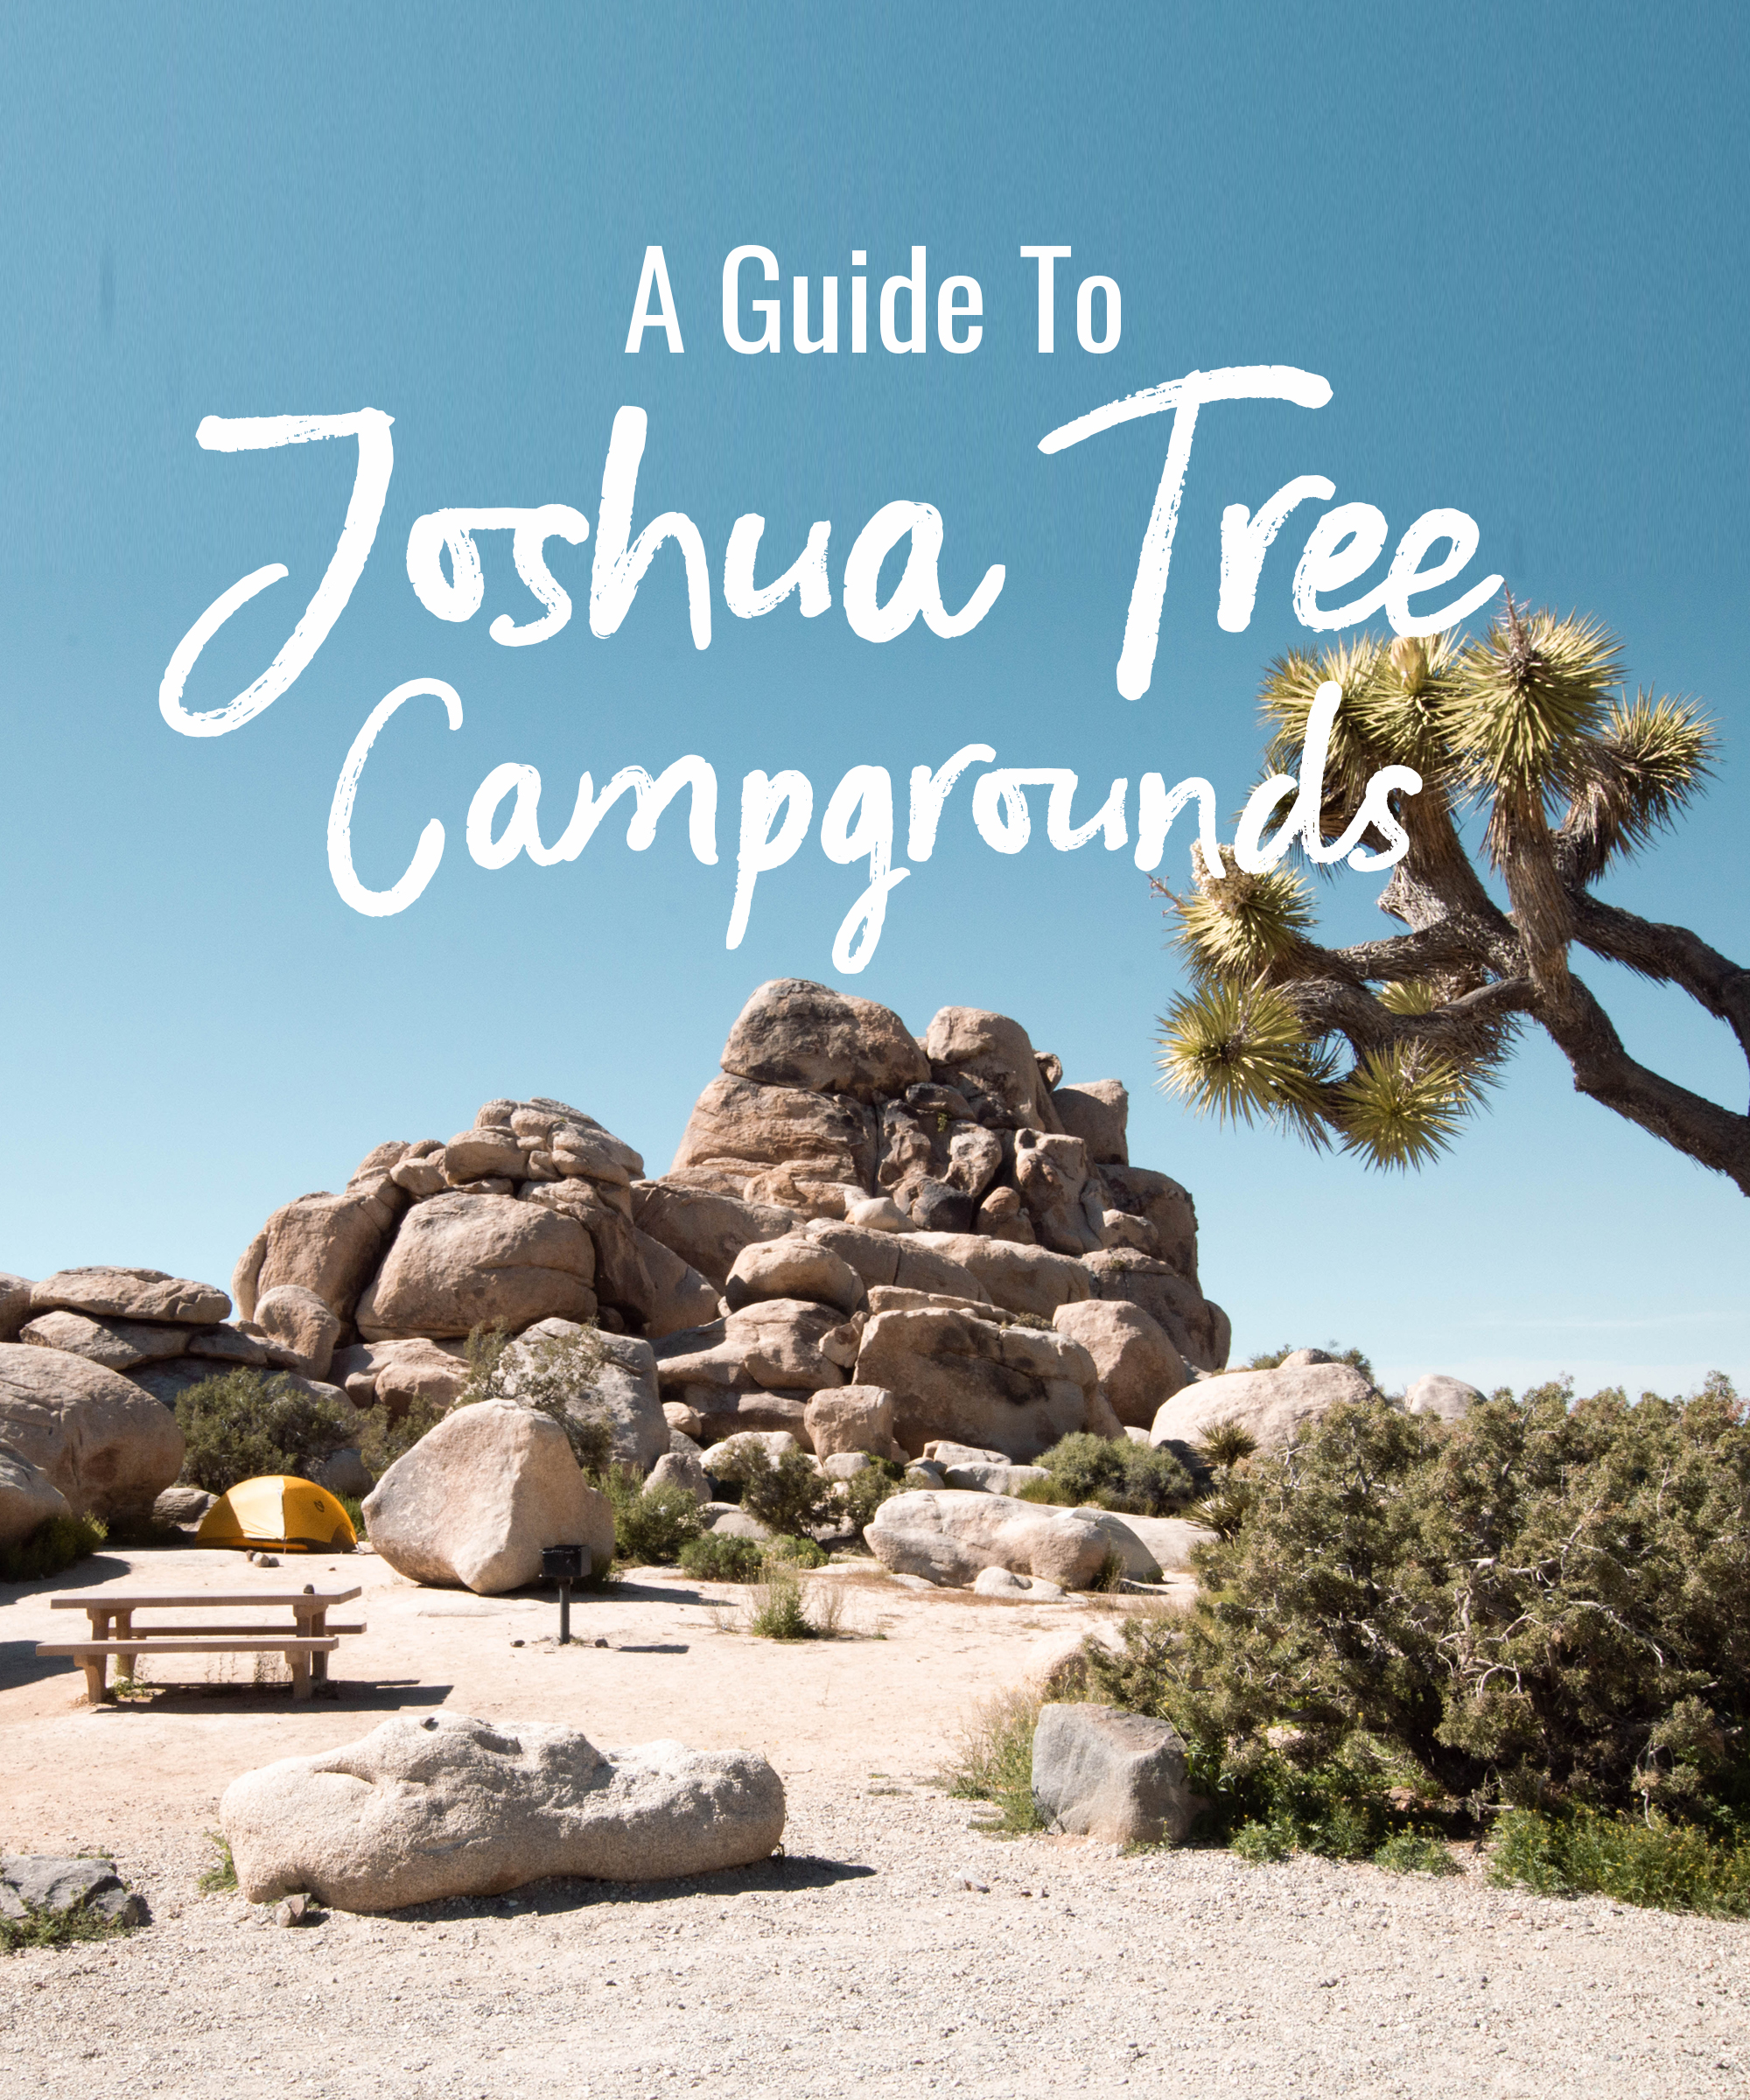 a guide to Joshua Tree campgrounds